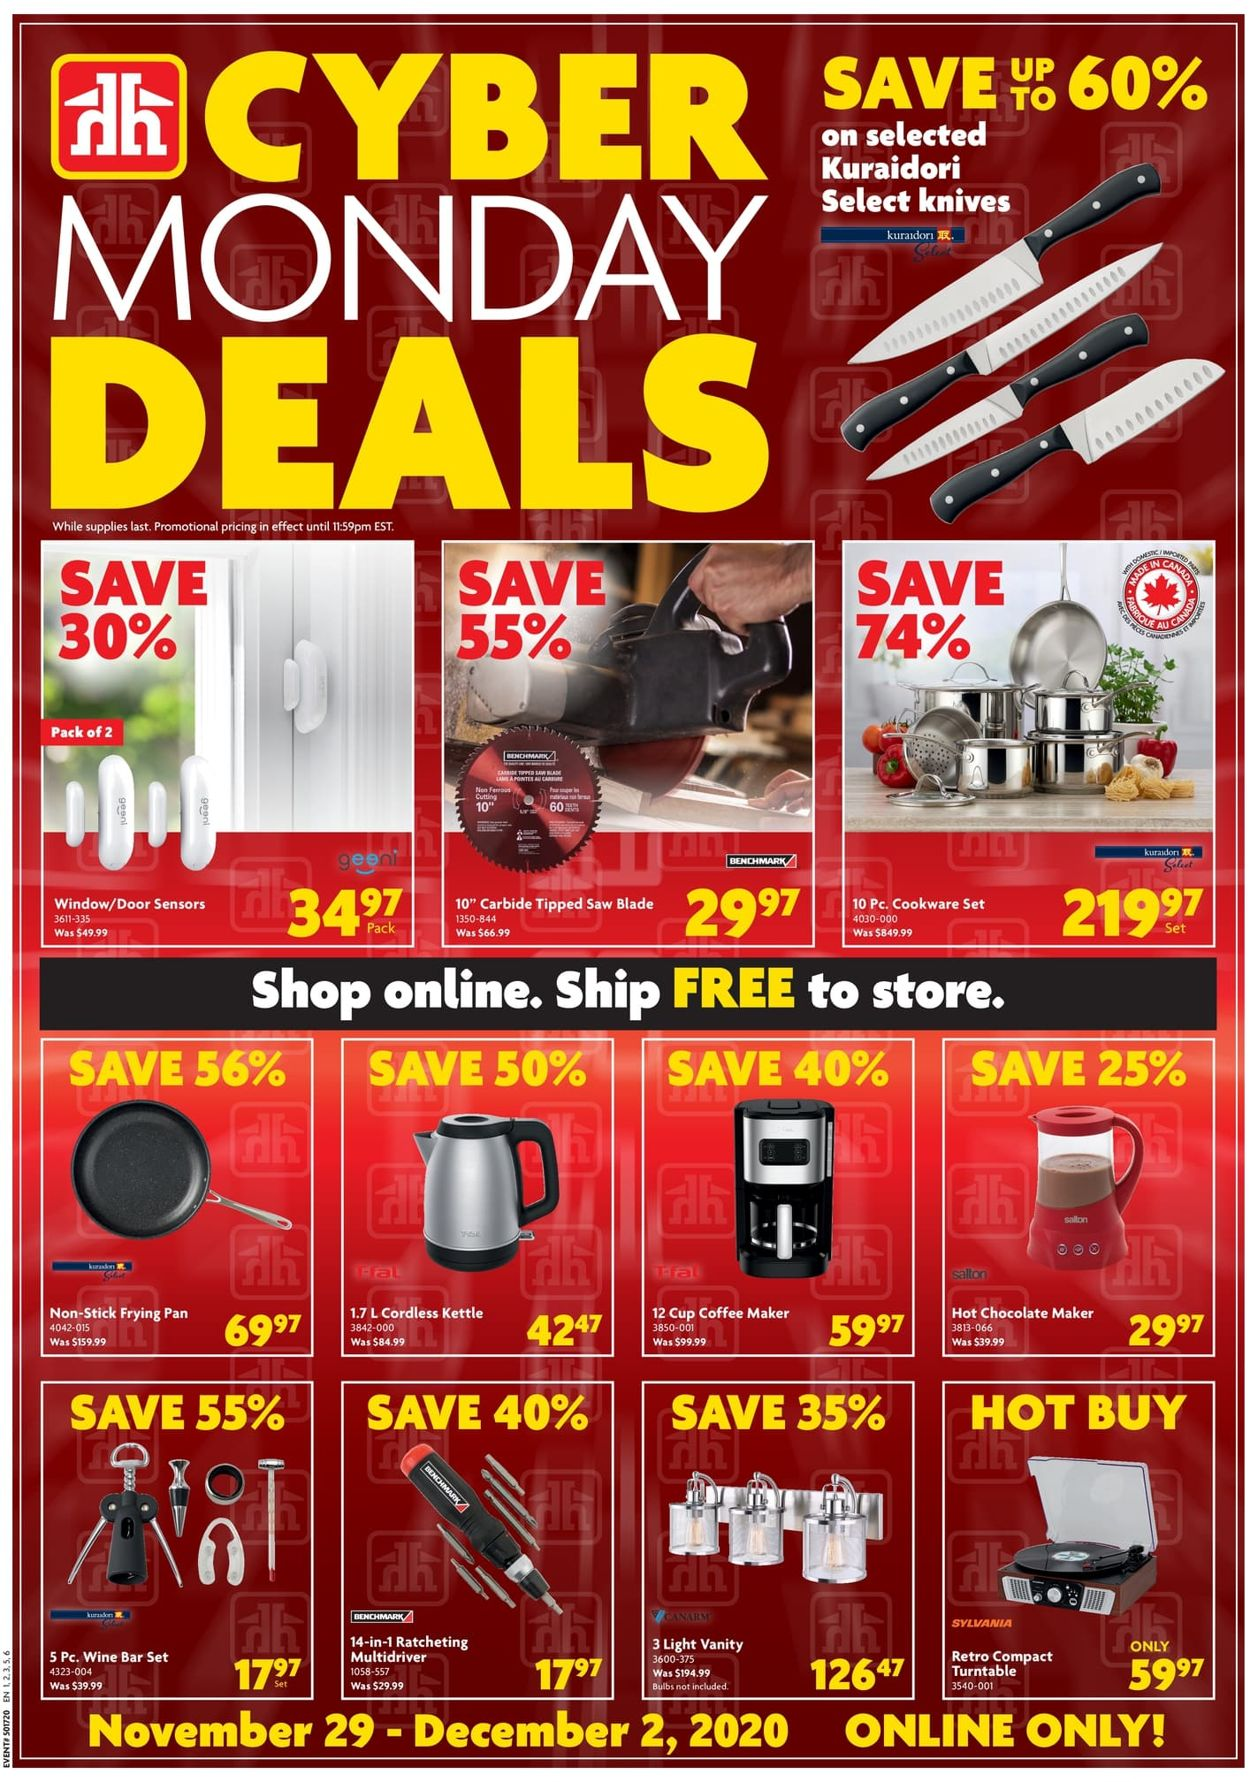 Home Hardware - Cyber Monday 2020 Flyer - 11/29-12/02/2020